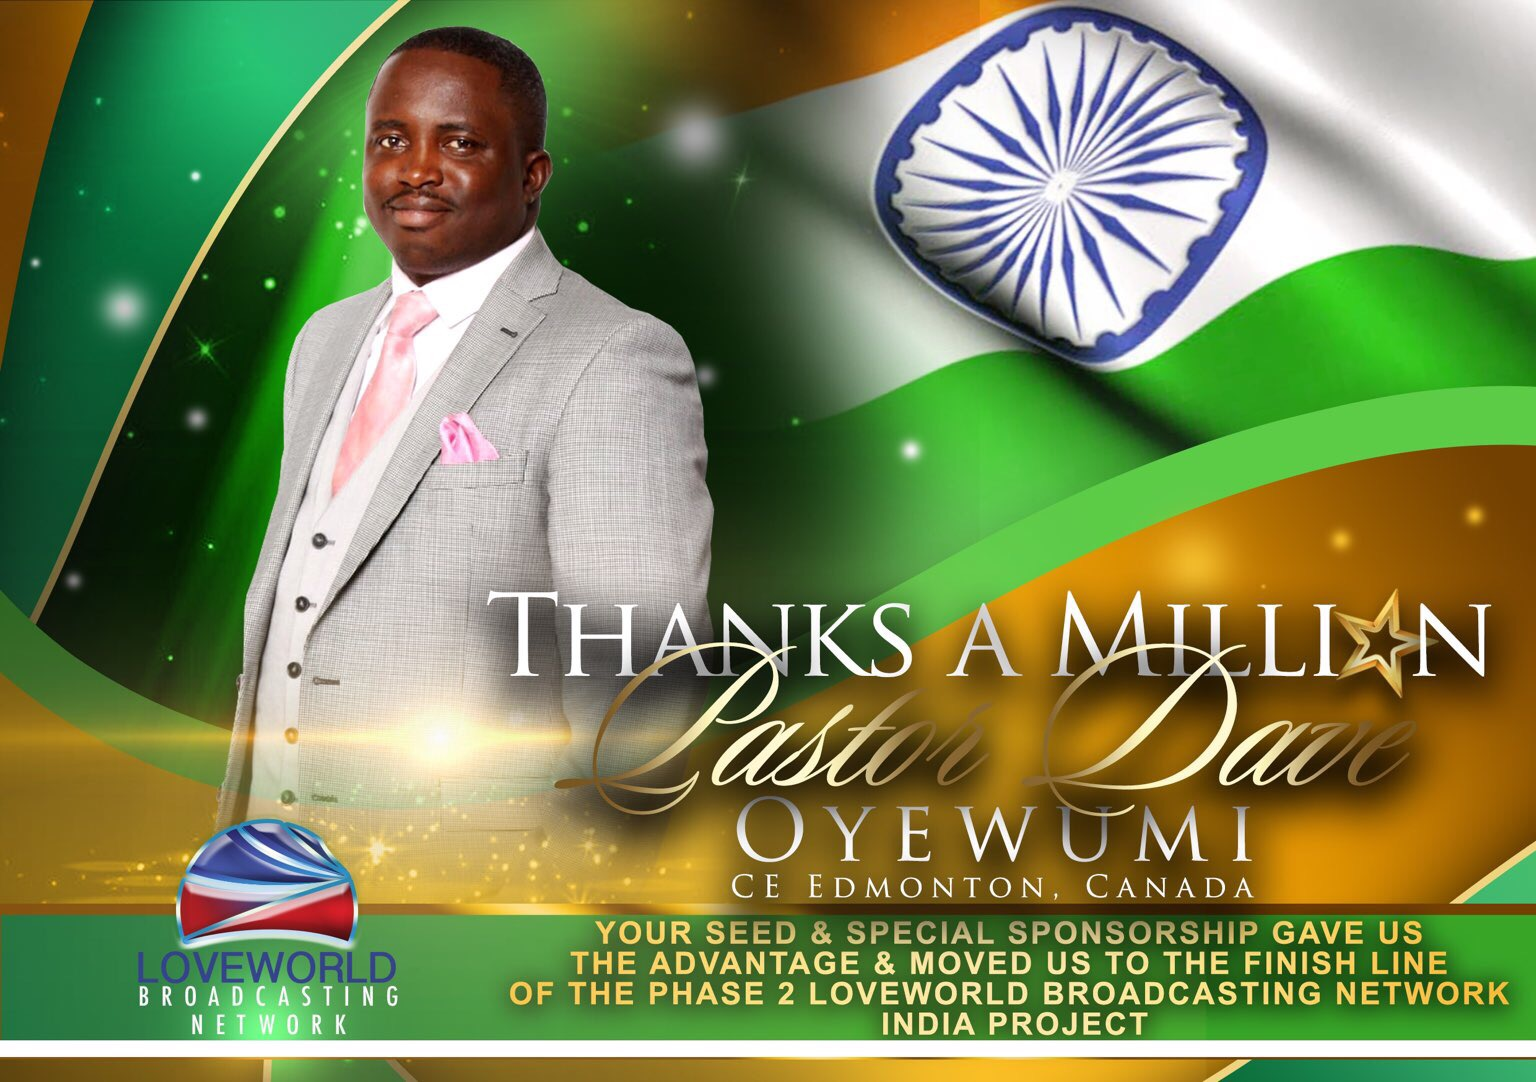 We give thanks for our